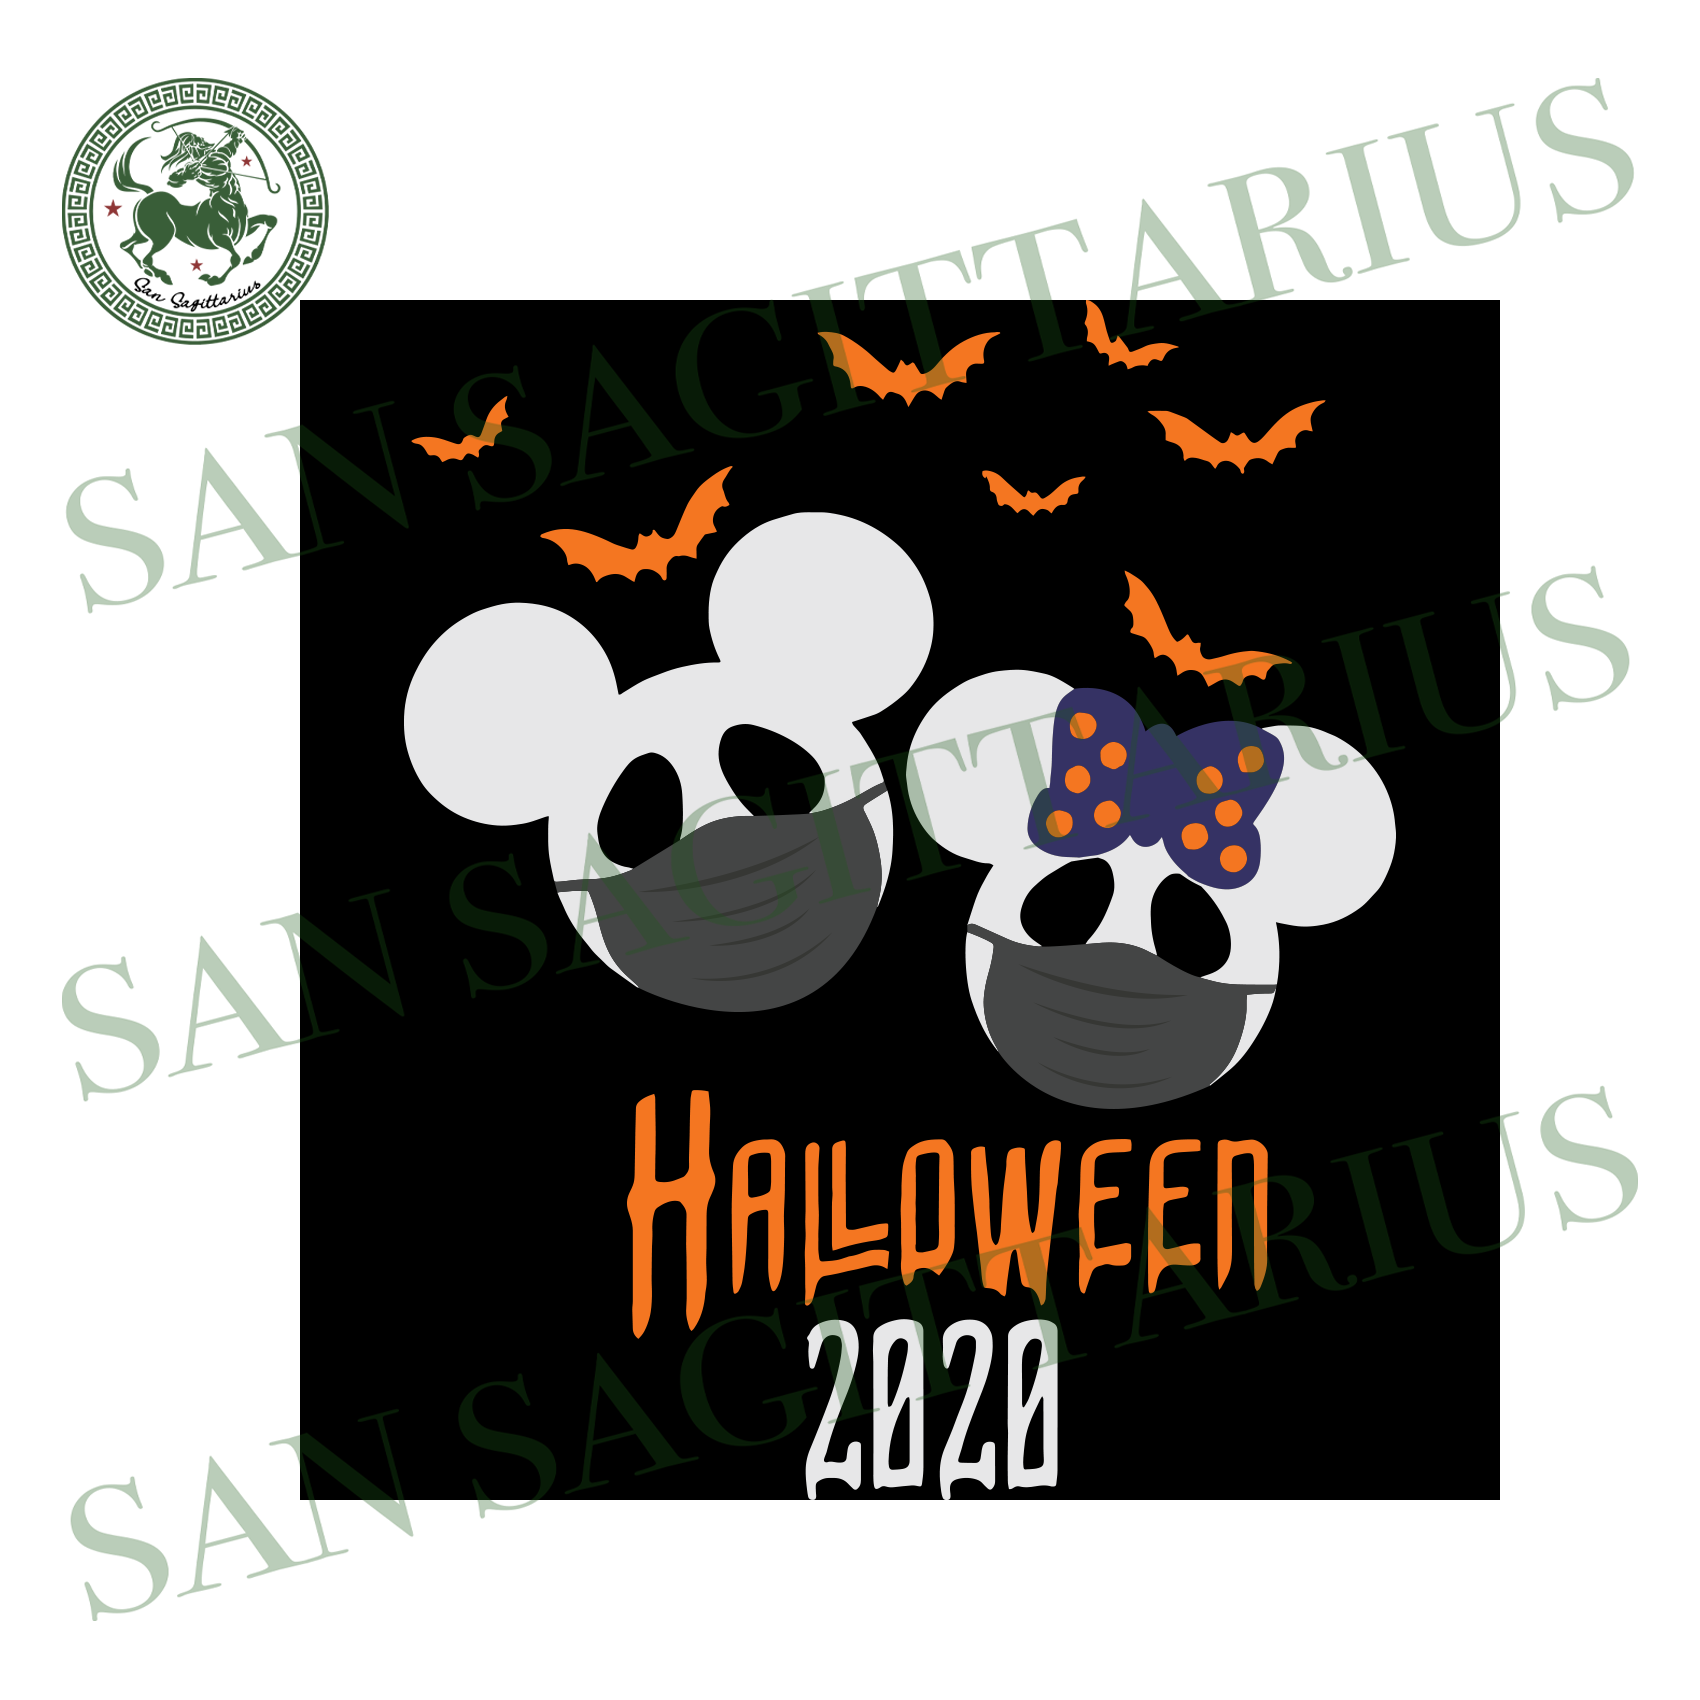 Mickey Halloween 2020, Halloween Svg, Halloween Design, Happy Halloween, Halloween Gift, Halloween Shirt, Mickey Svg, Mickey Halloween Svg, Creepy Mickey, Mickey Halloween Shirt